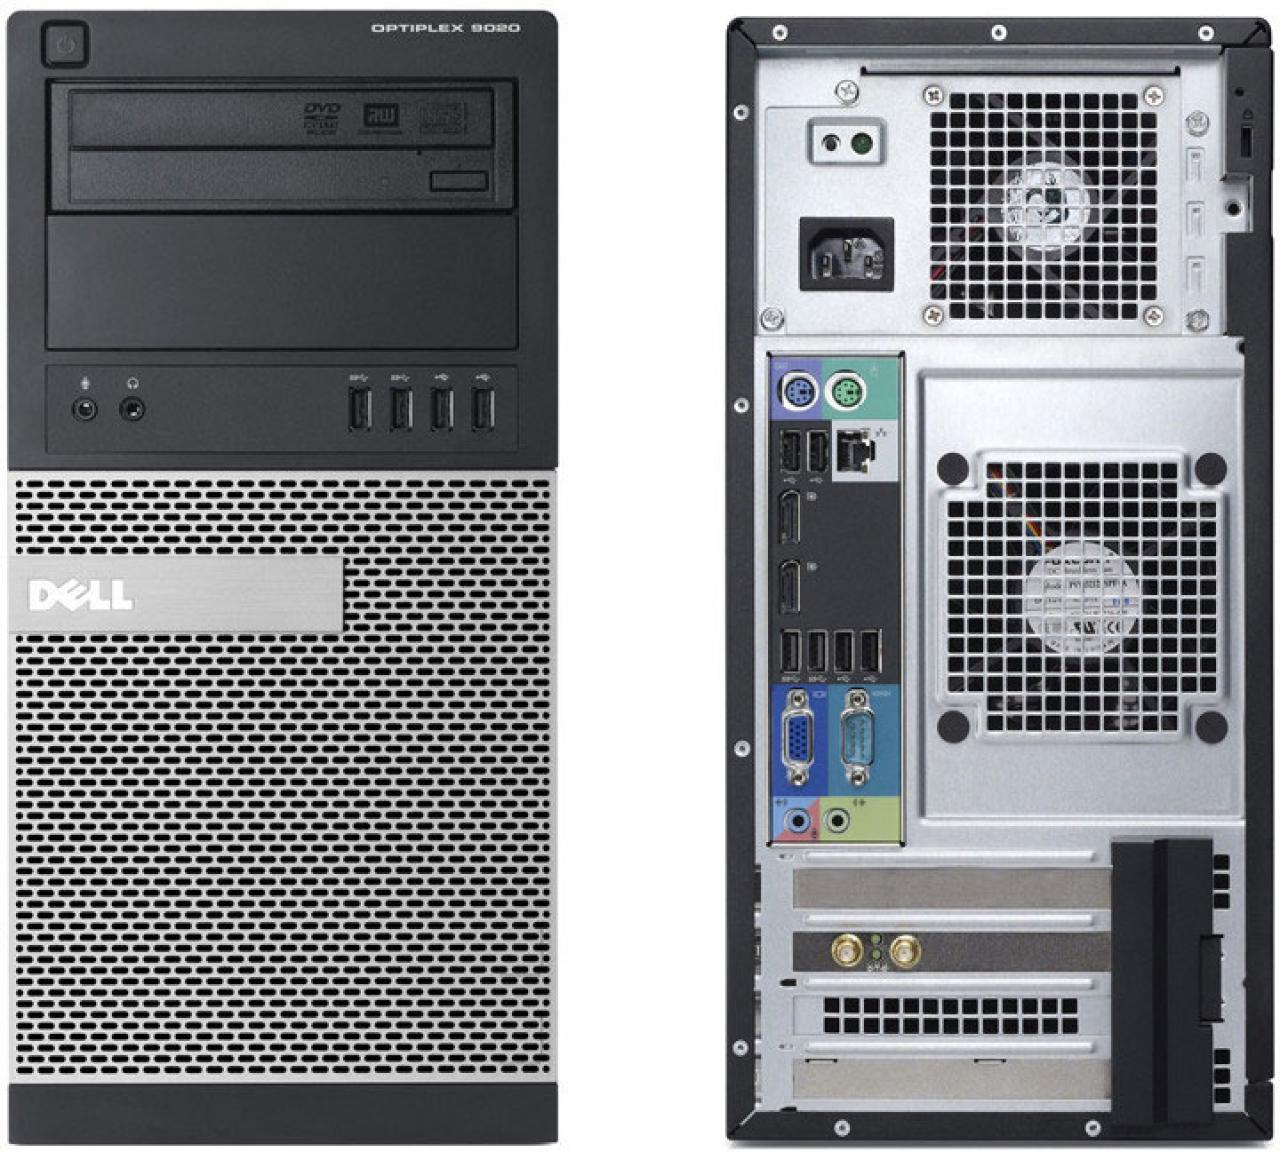 Dell Optiplex 9020 Mini Tower I5 Astringo